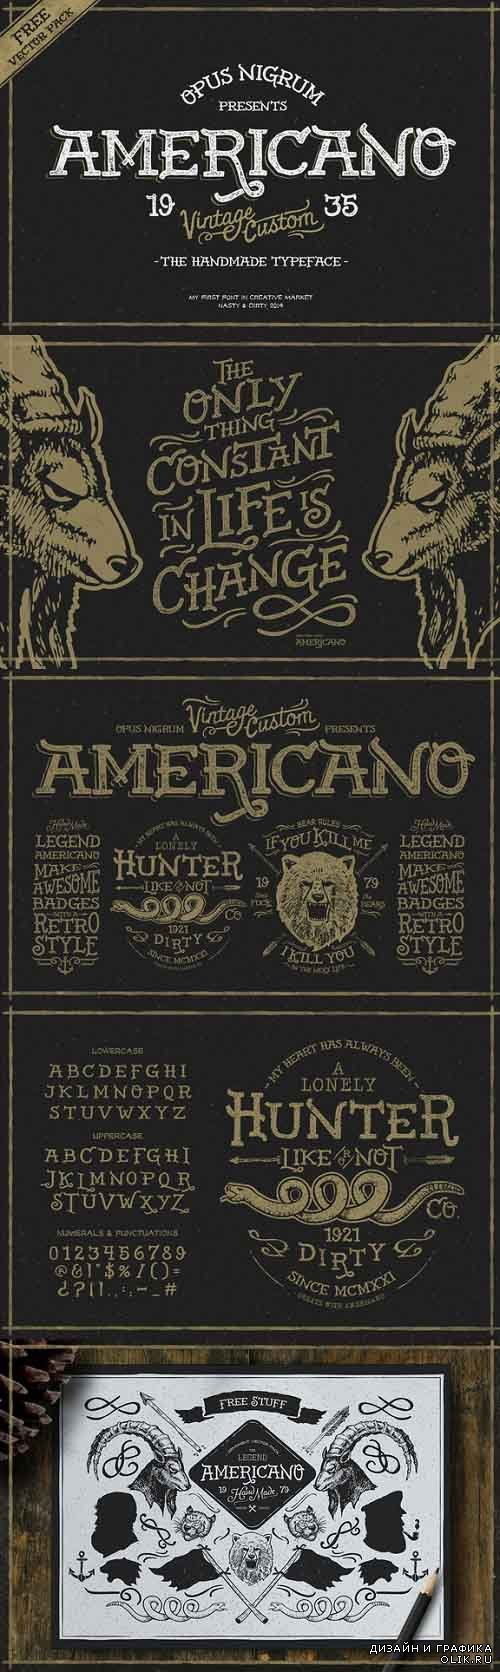 Americano Pack Font Style